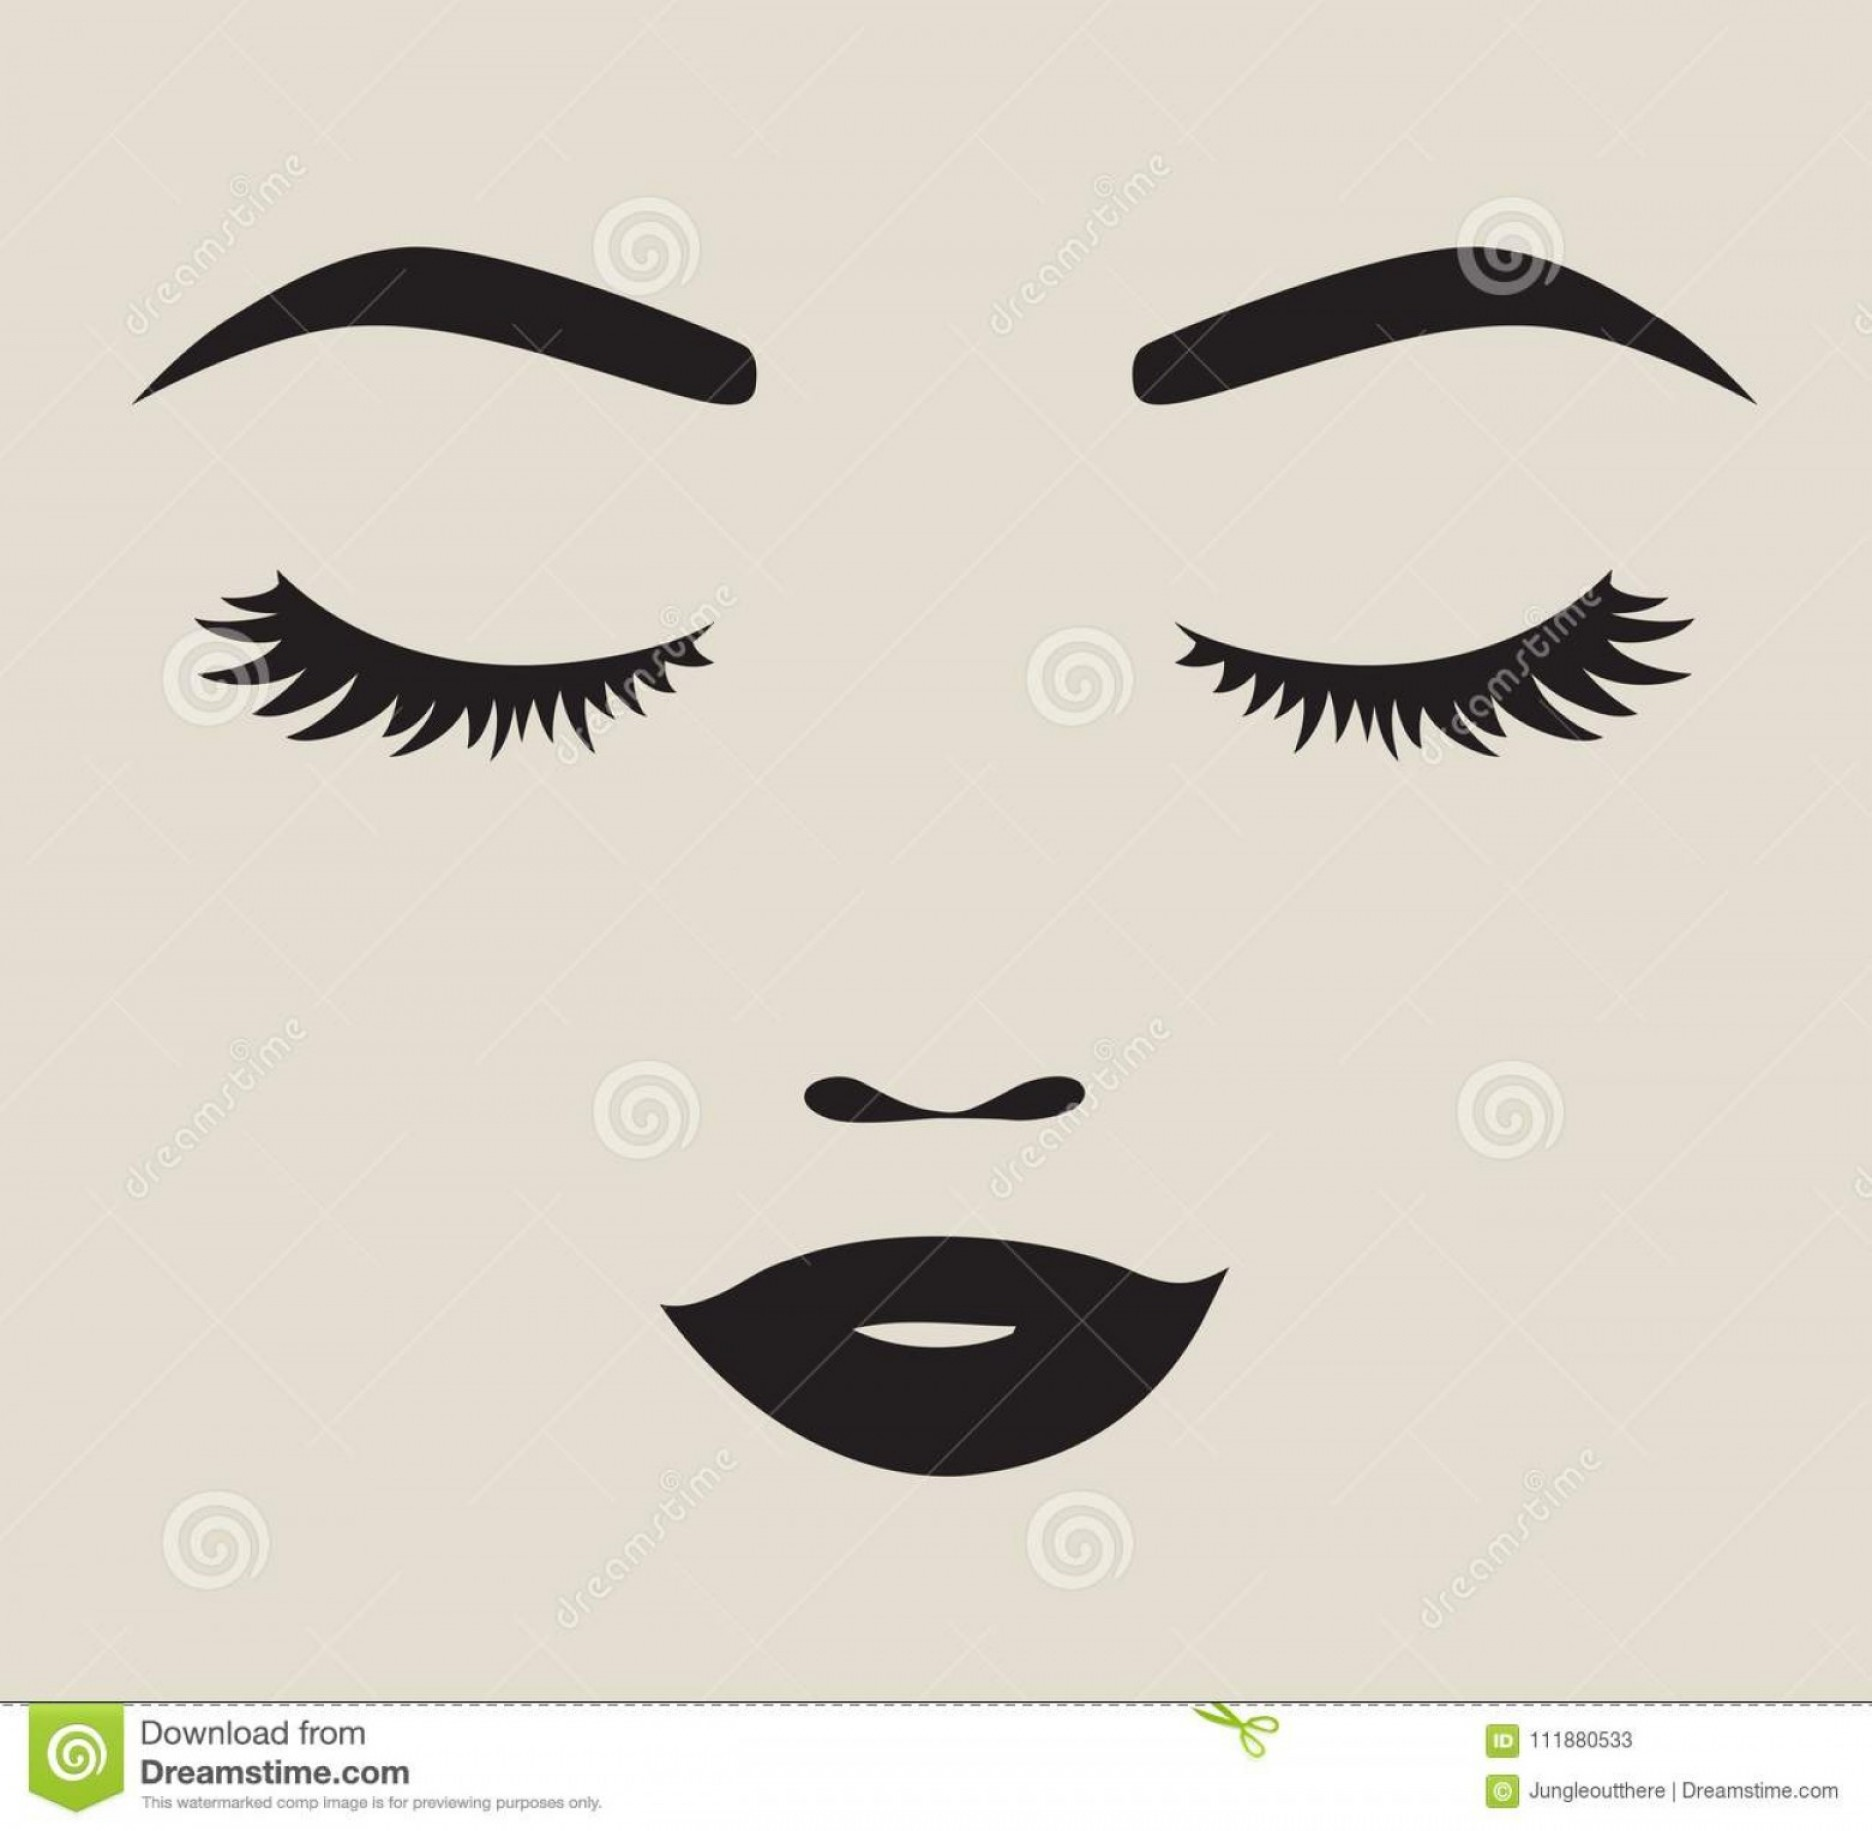 Woman Silhouette Vector Face Expression: Vector Illustration Pretty Woman Face Silhouette Eyelashes Eyebrows Lips Pretty Woman Face Silhouette Vector Image